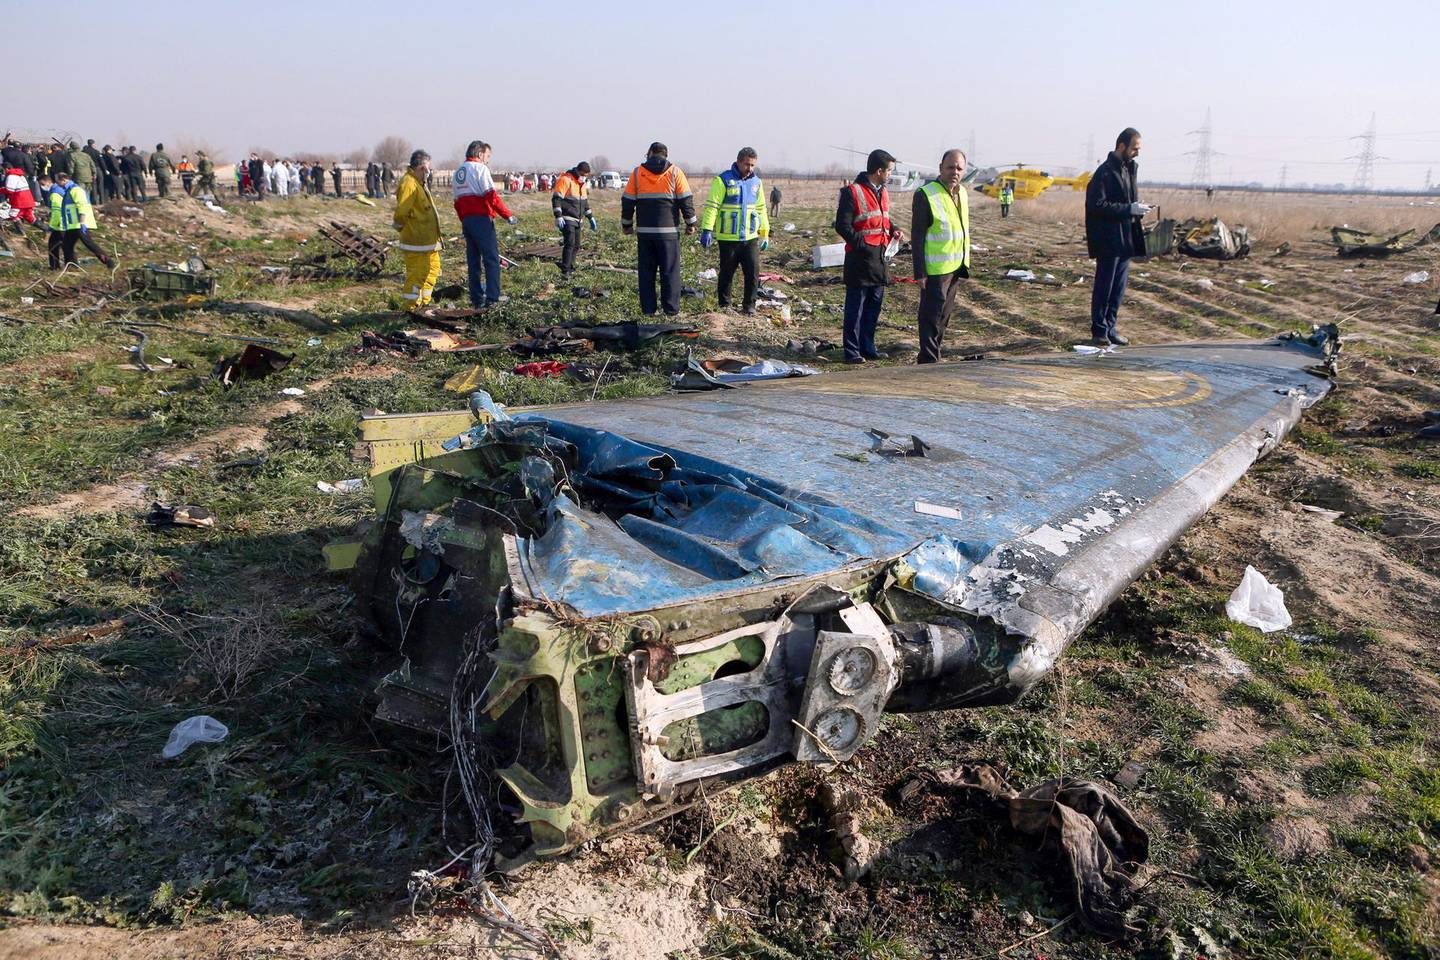 (FILES) In this file photo taken on January 8, 2020 rescue teams are seen at the scene of a Ukrainian airliner that crashed shortly after take-off near Imam Khomeini airport in the Iranian capital Tehran. - Iran said on January 11 that it unintentionally shot down the Ukrainian plane due to 'human error'. (Photo by Akbar TAVAKOLI / IRNA / AFP)